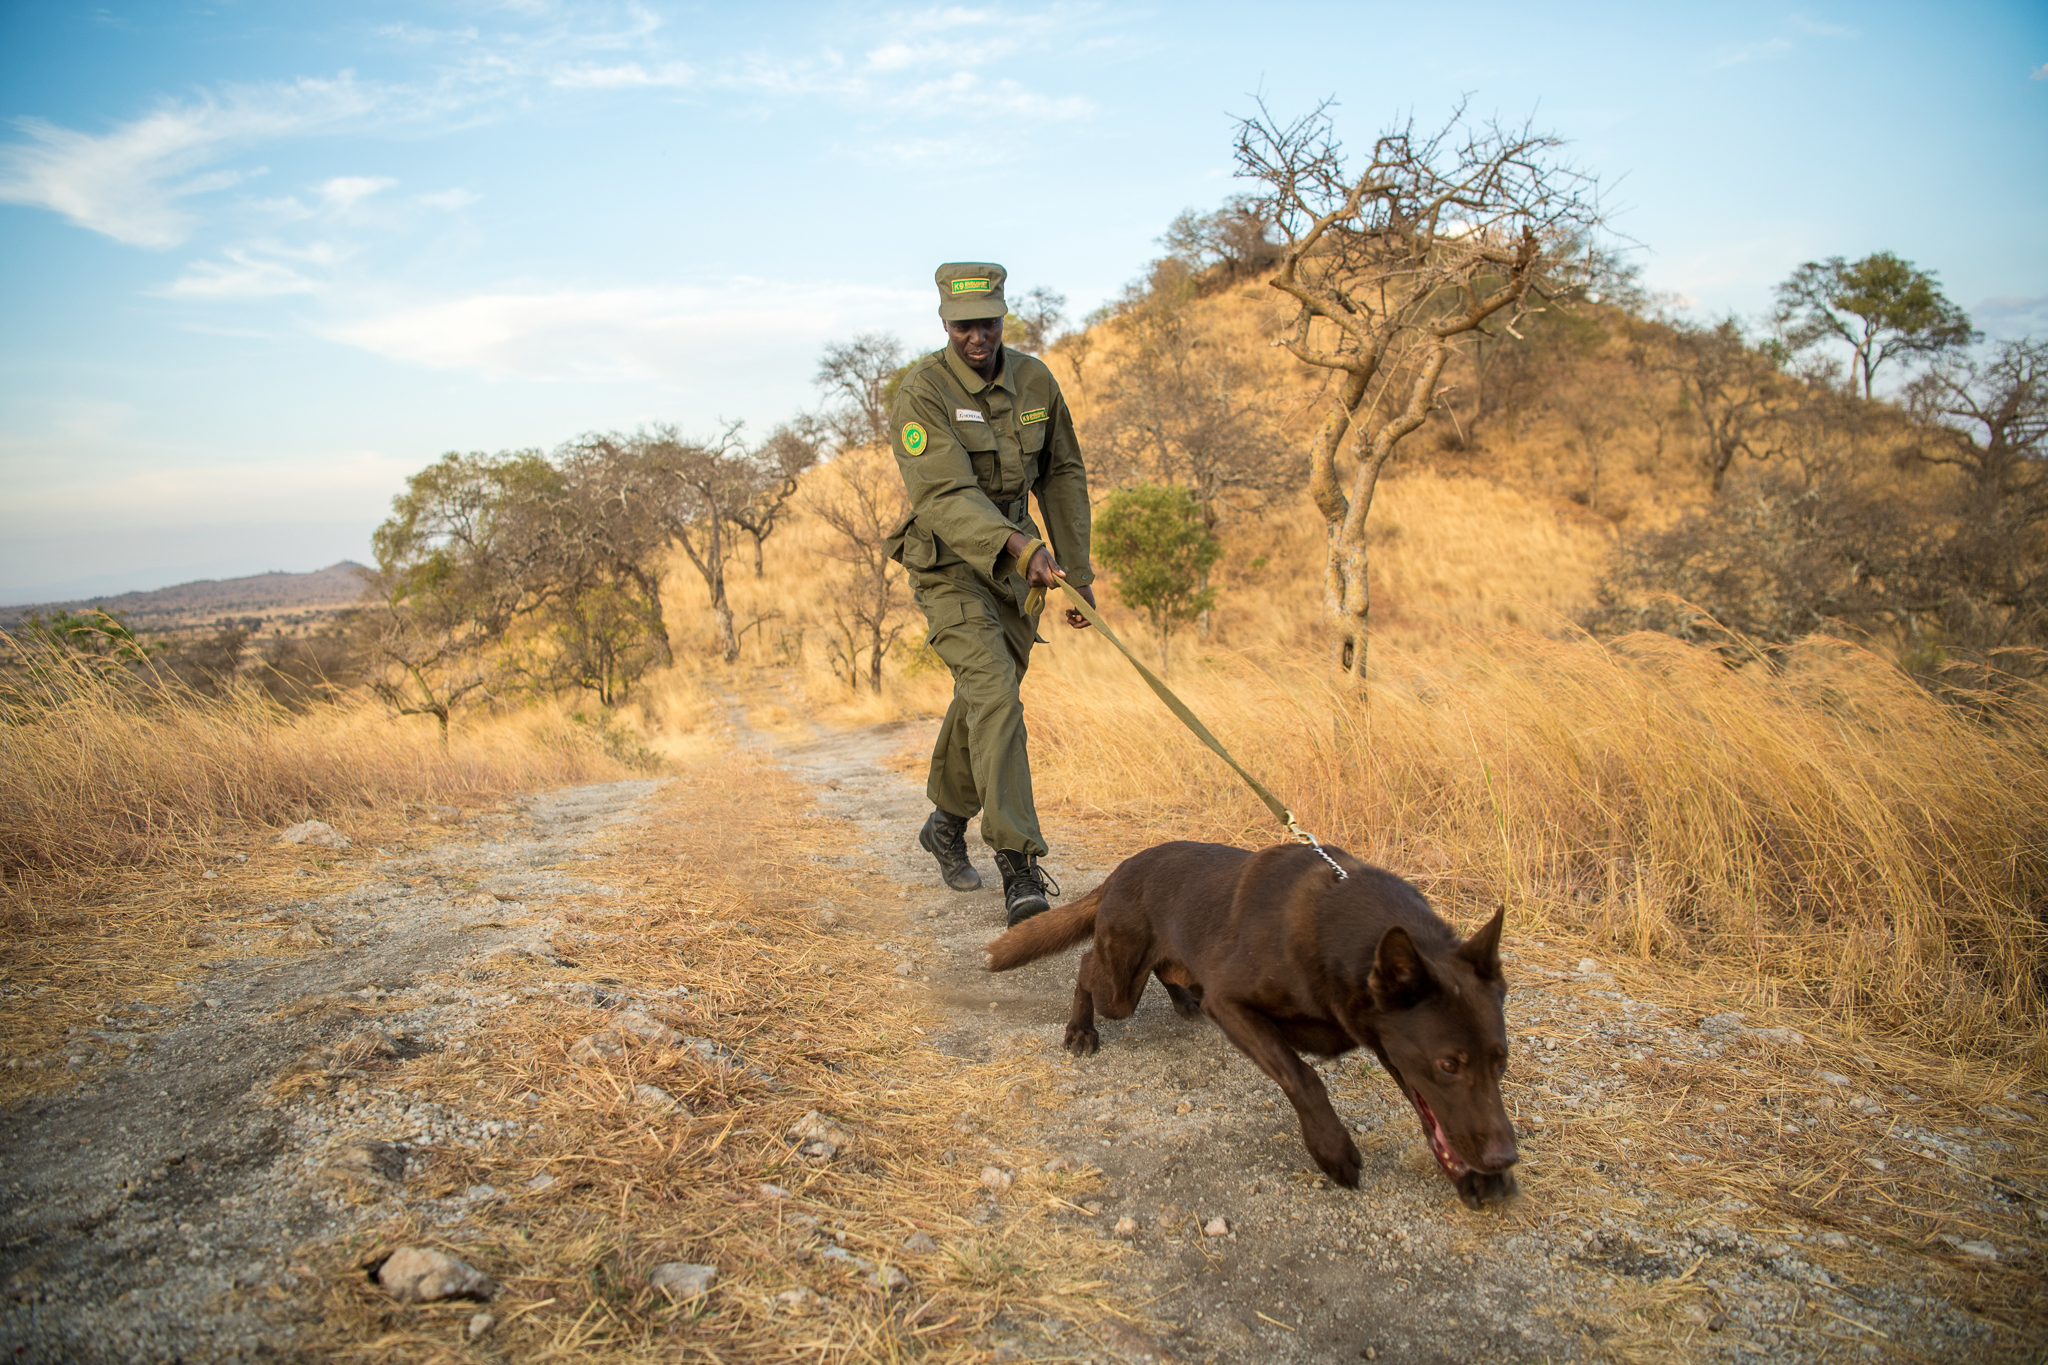 Dogs, working with their Maasai handlers, are helping to keep wildlife and people safe in northern Tanzania.